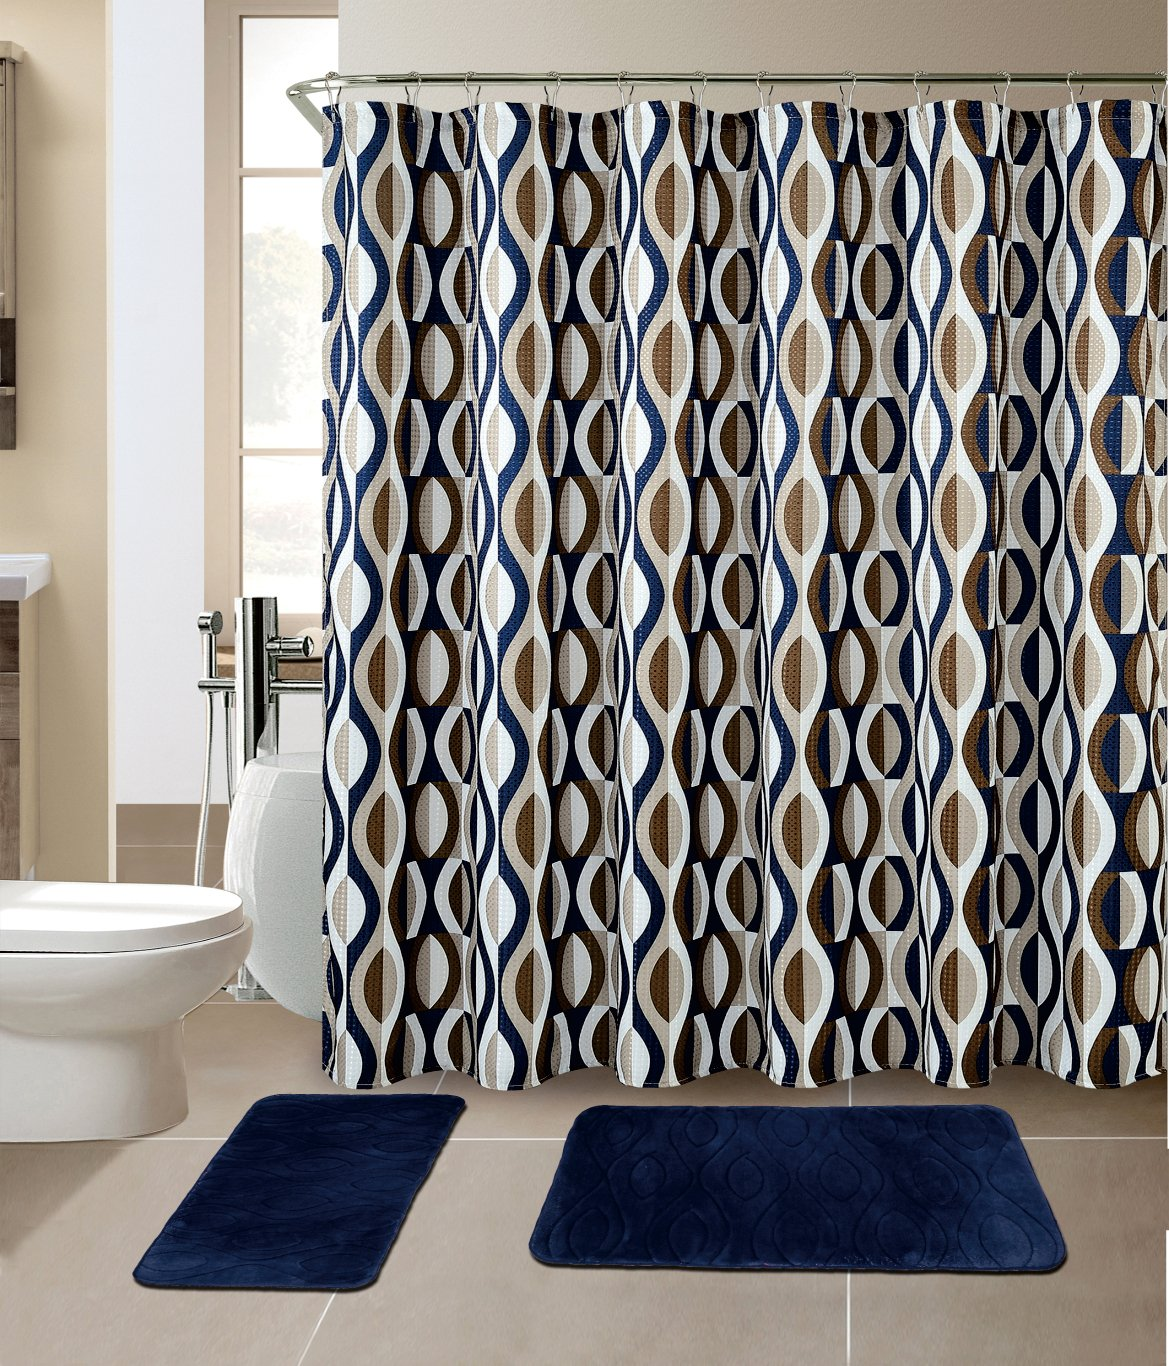 Curtain pattern matching curtain menzilperde net for Matching bedroom and bathroom sets